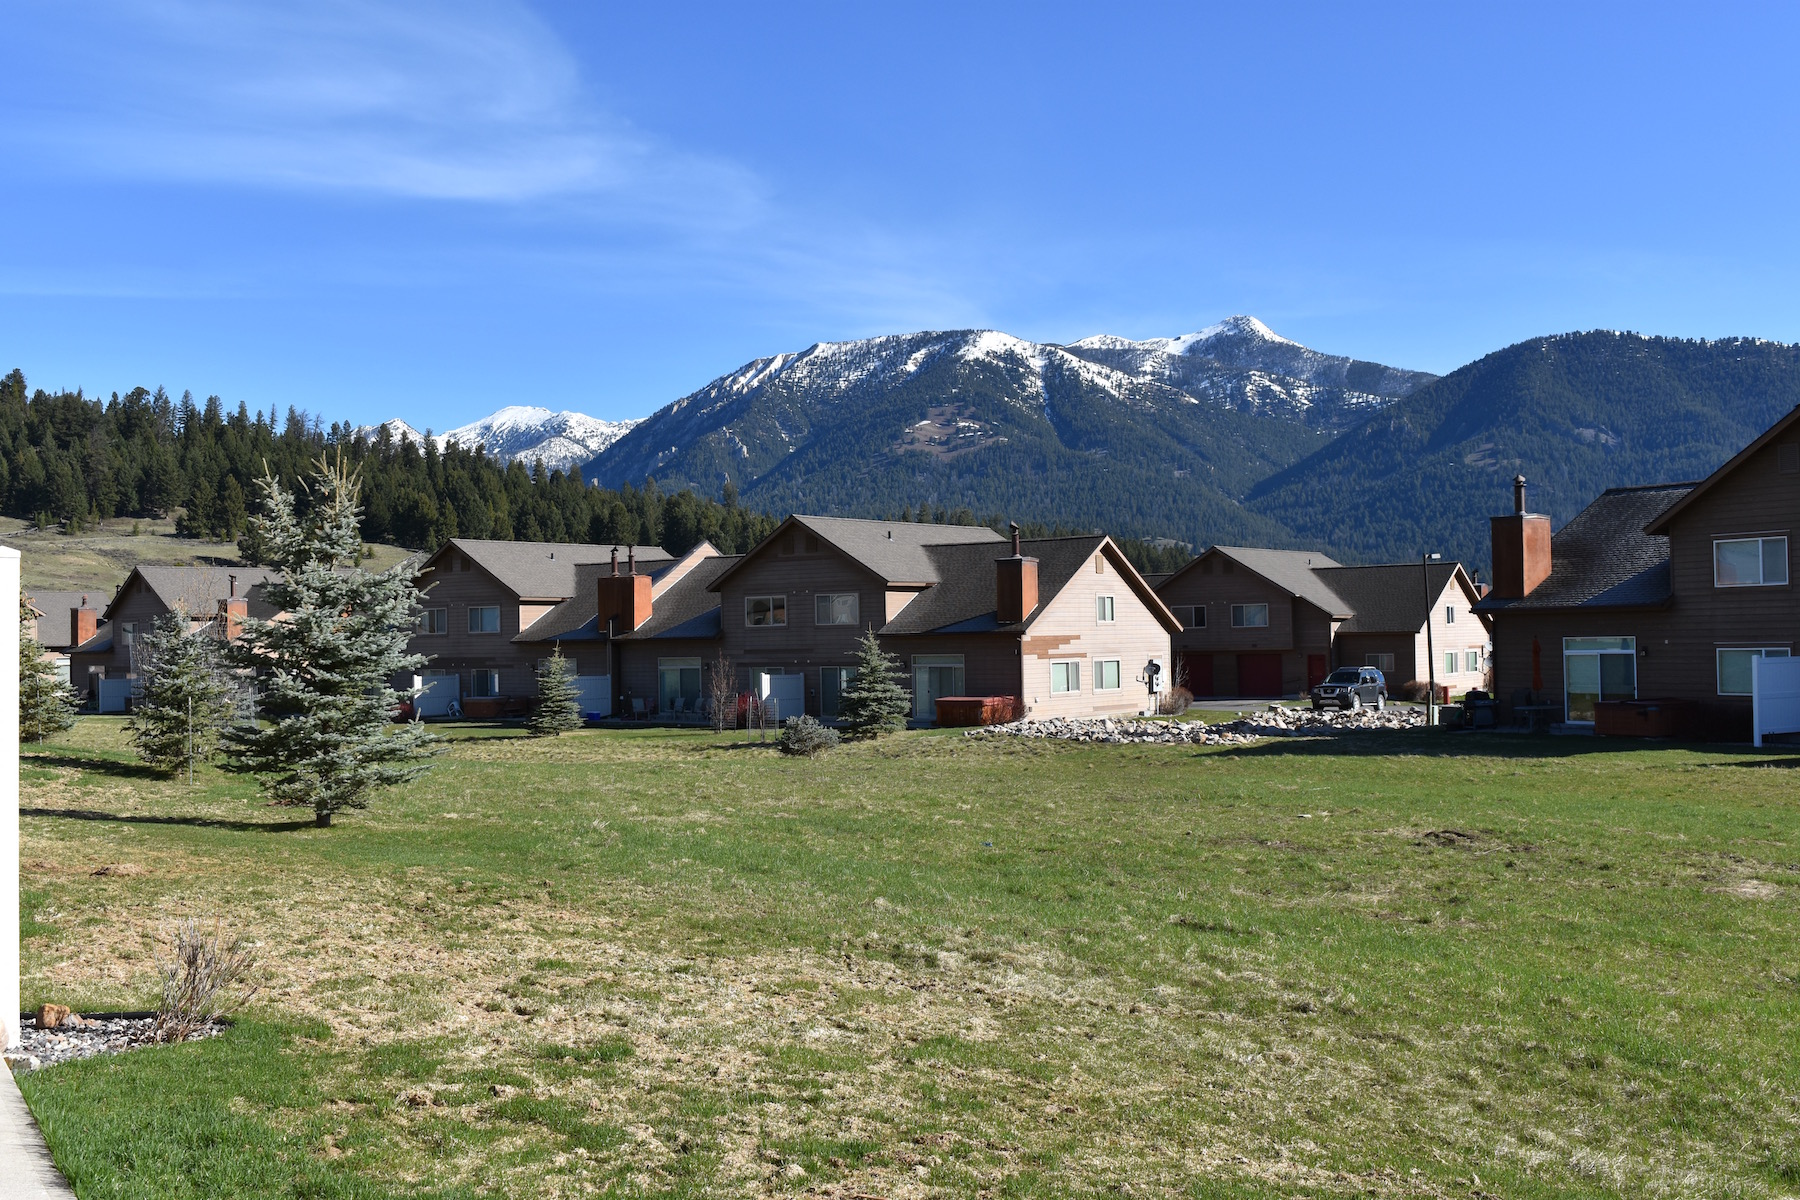 Condominium for Sale at 65 Starlight Drive 65 Starlight Dr. Big Sky, Montana, 59716 United States